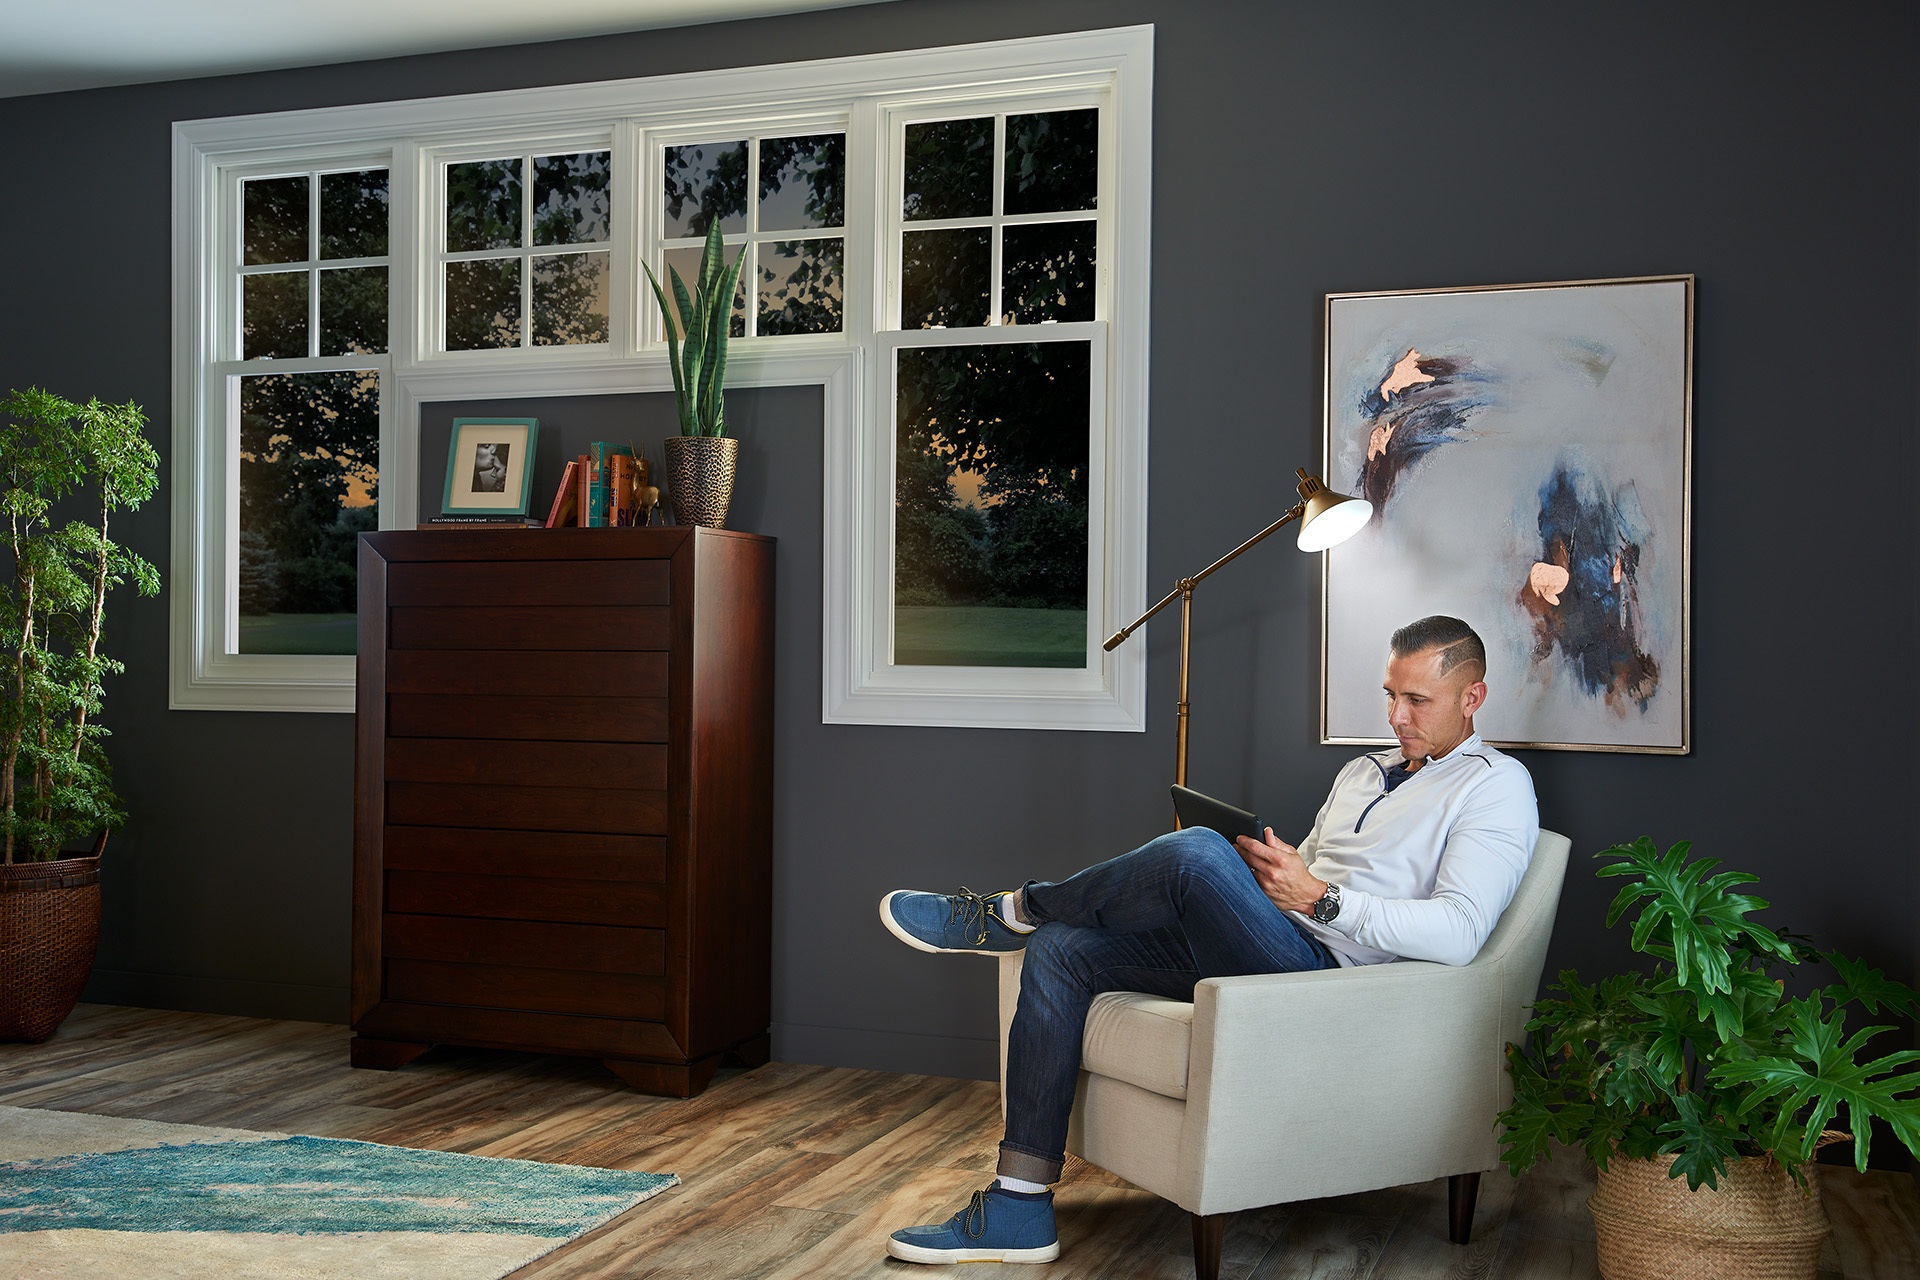 5 of the Most Popular Smart Home Upgrades That You Can Do in a Weekend